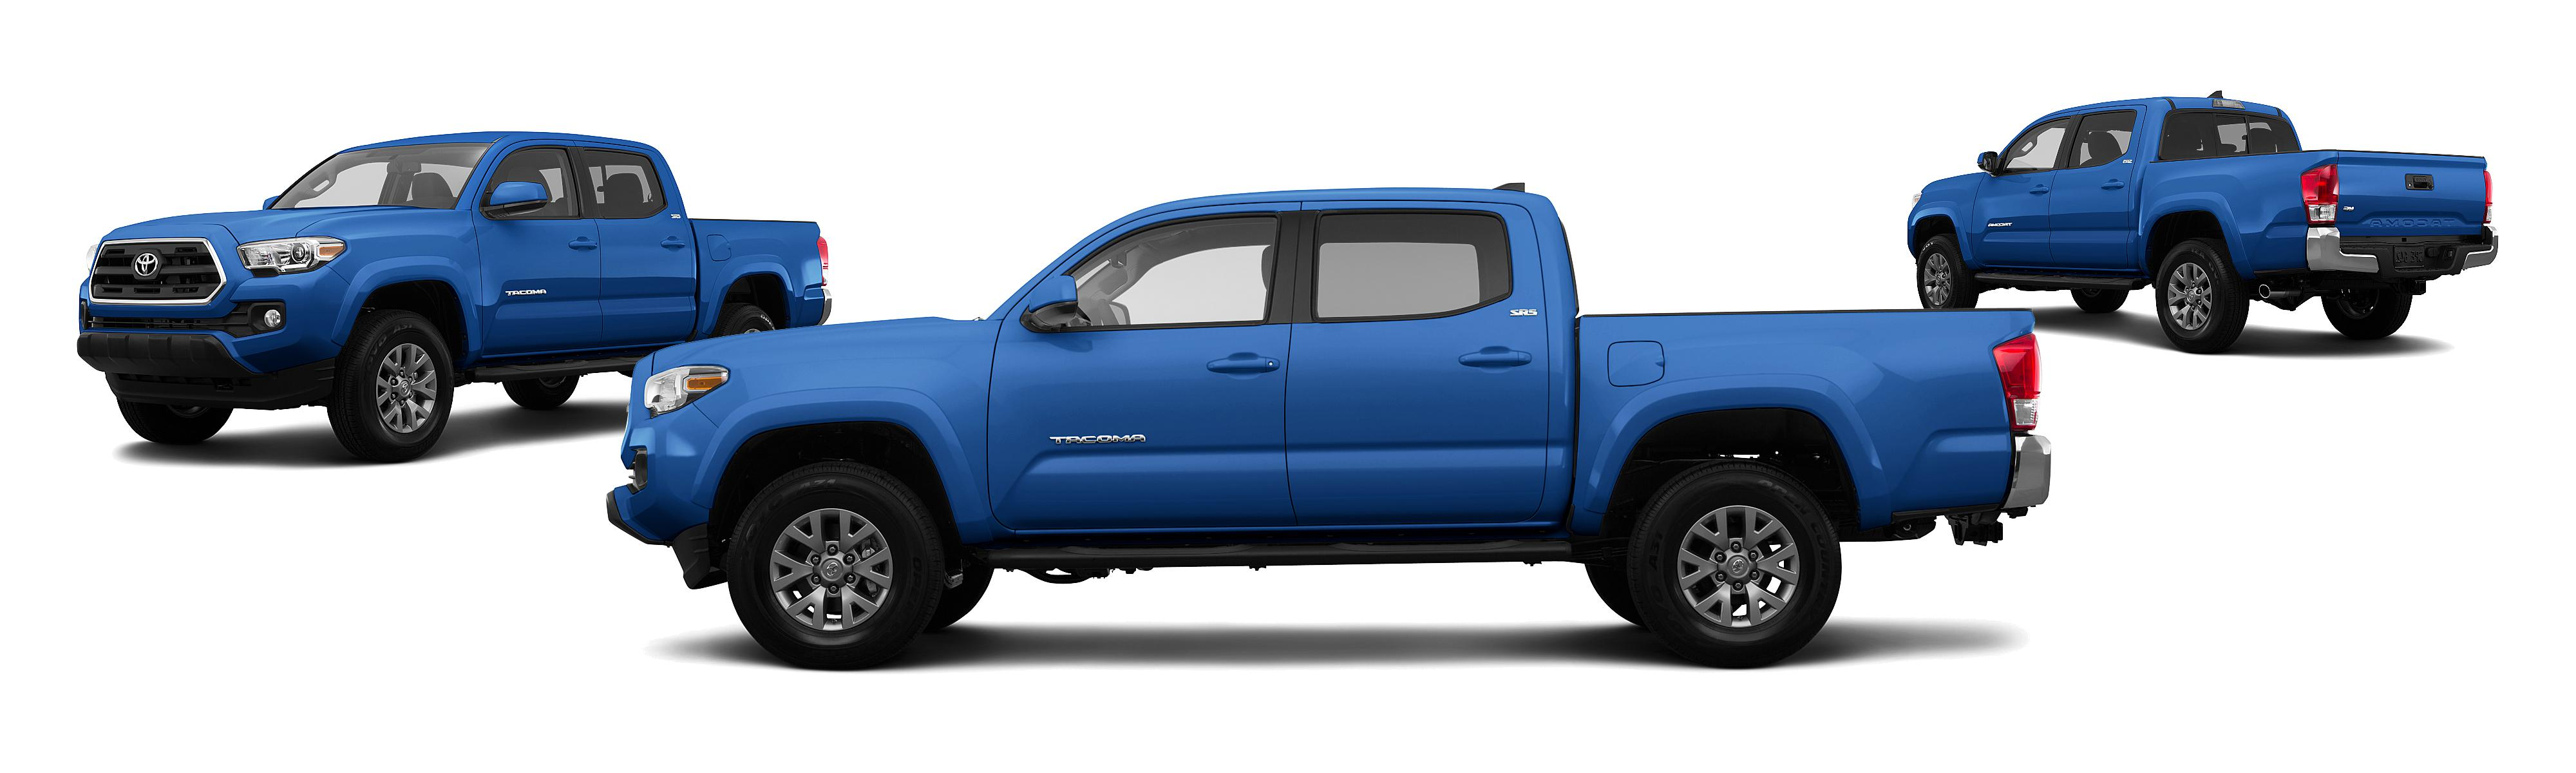 2016 toyota tacoma 4x2 sr 4dr double cab 5 0 ft sb research rh groovecar com